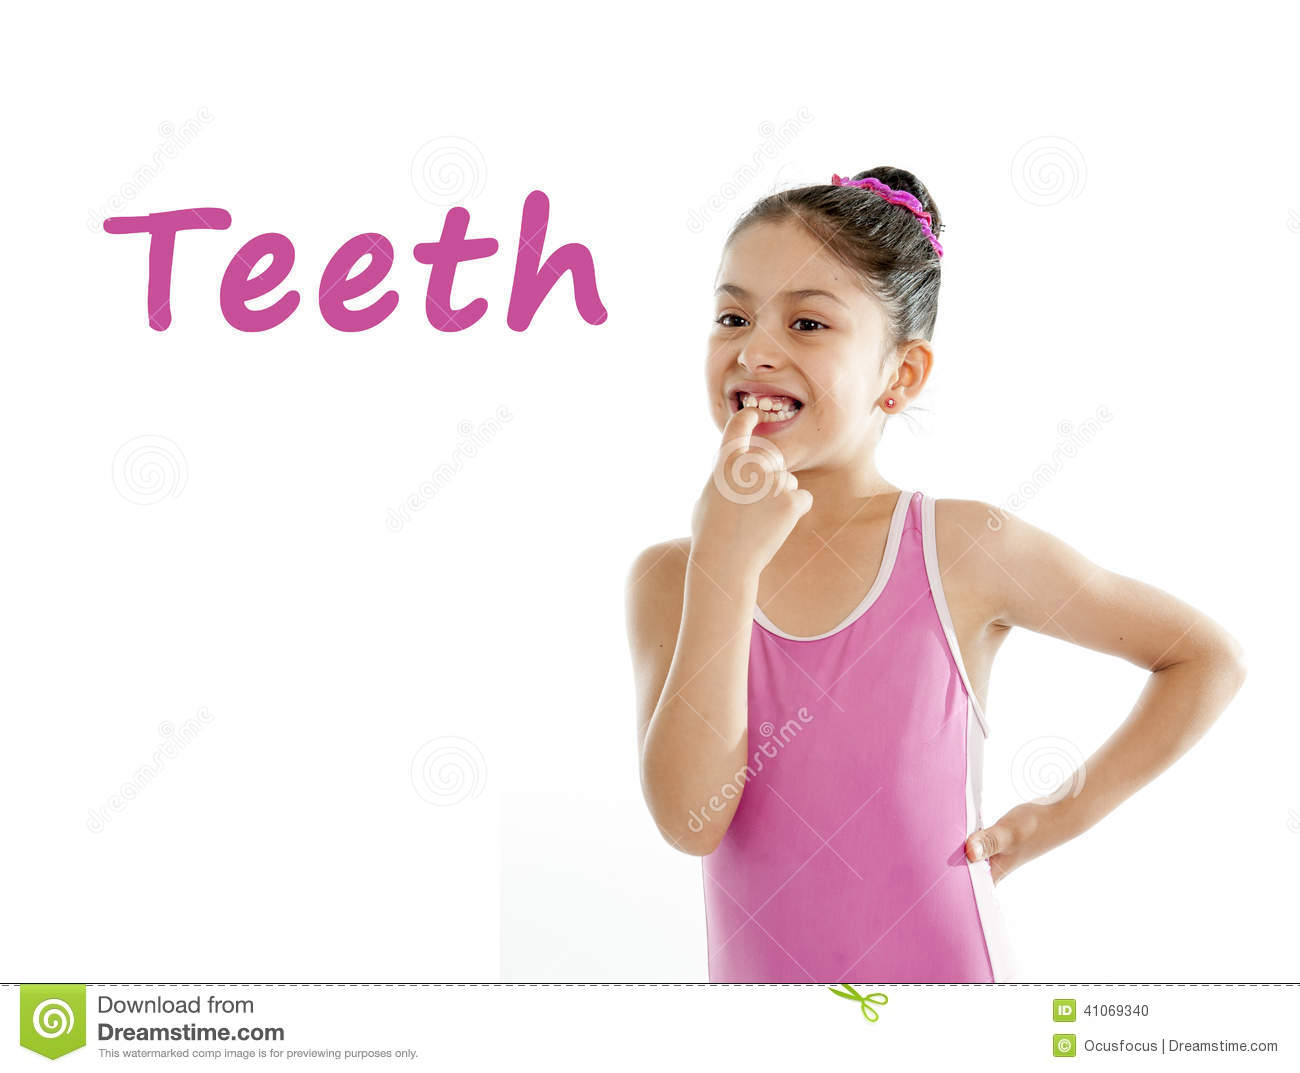 School card of girl pointing at her mouth and teeth on white background